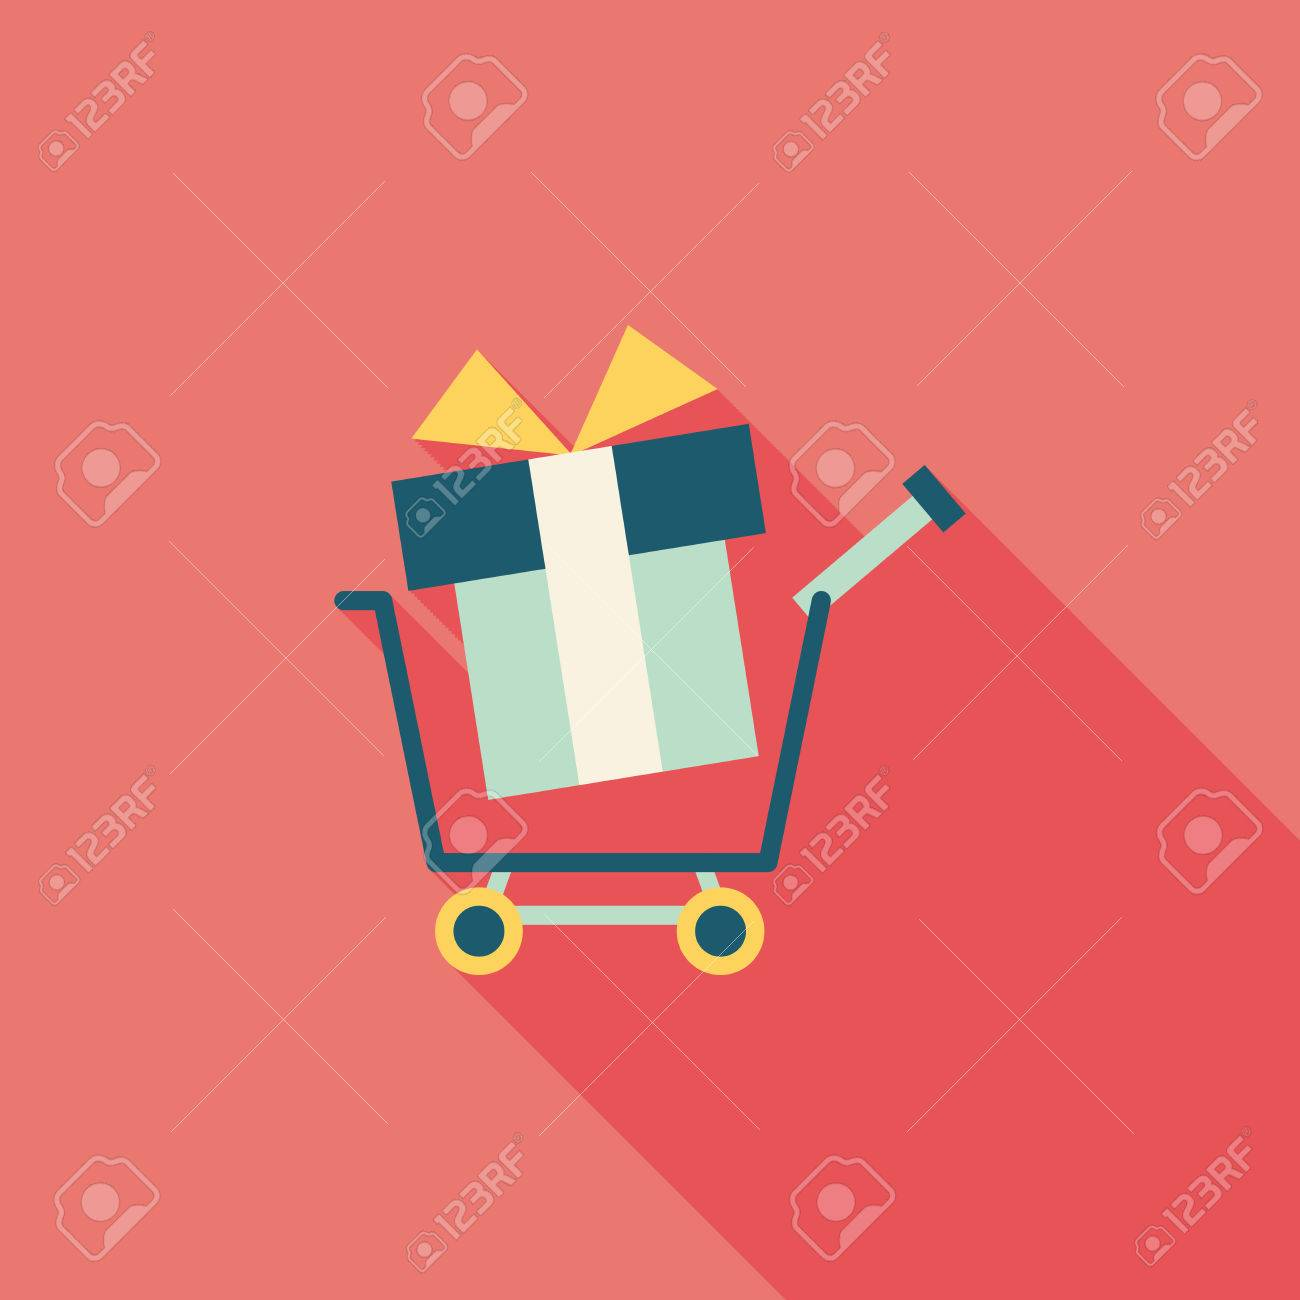 shopping cart flat icon with long shadow - 30652140